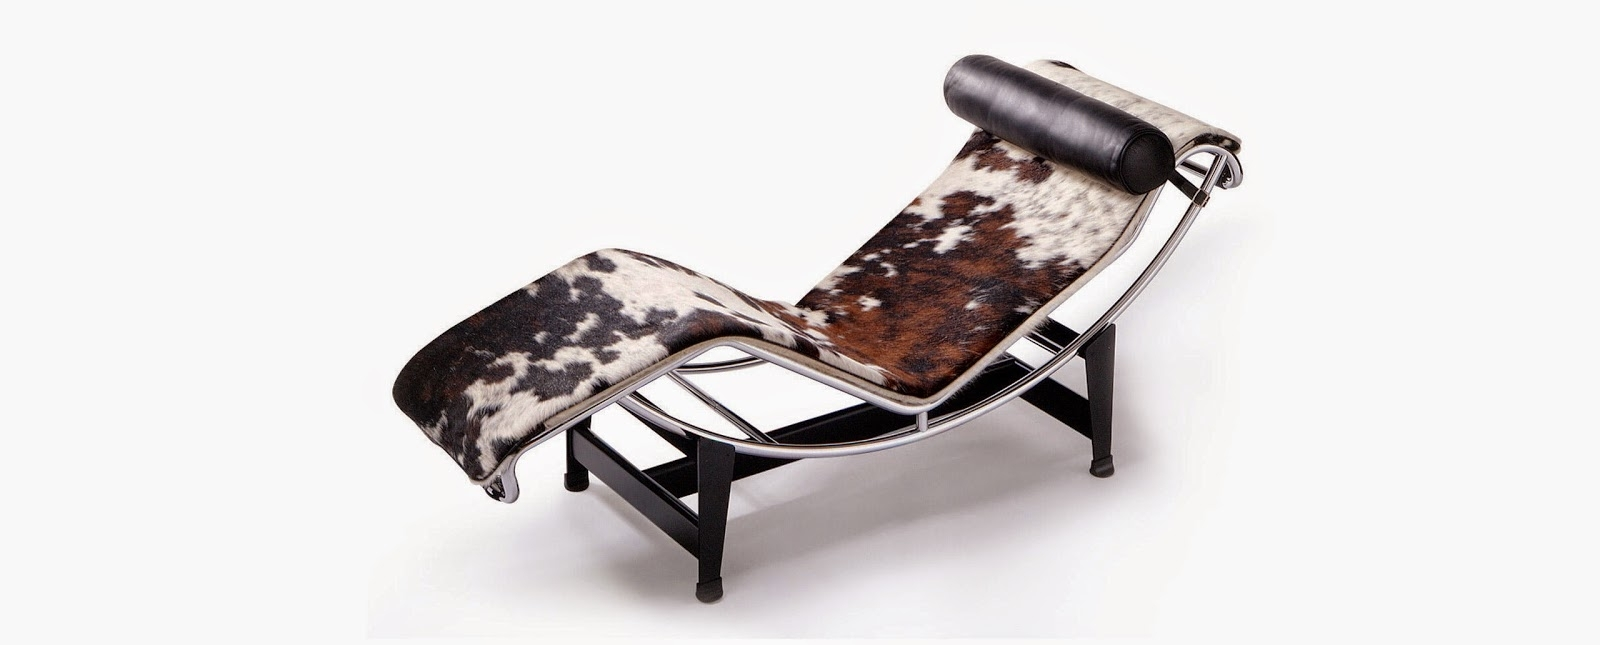 Nannasalmi Horsehair Jewelry: Le Corbusier Lc4 Chaise Lounge With Regard To Well Liked Corbusier Chaises (View 4 of 15)